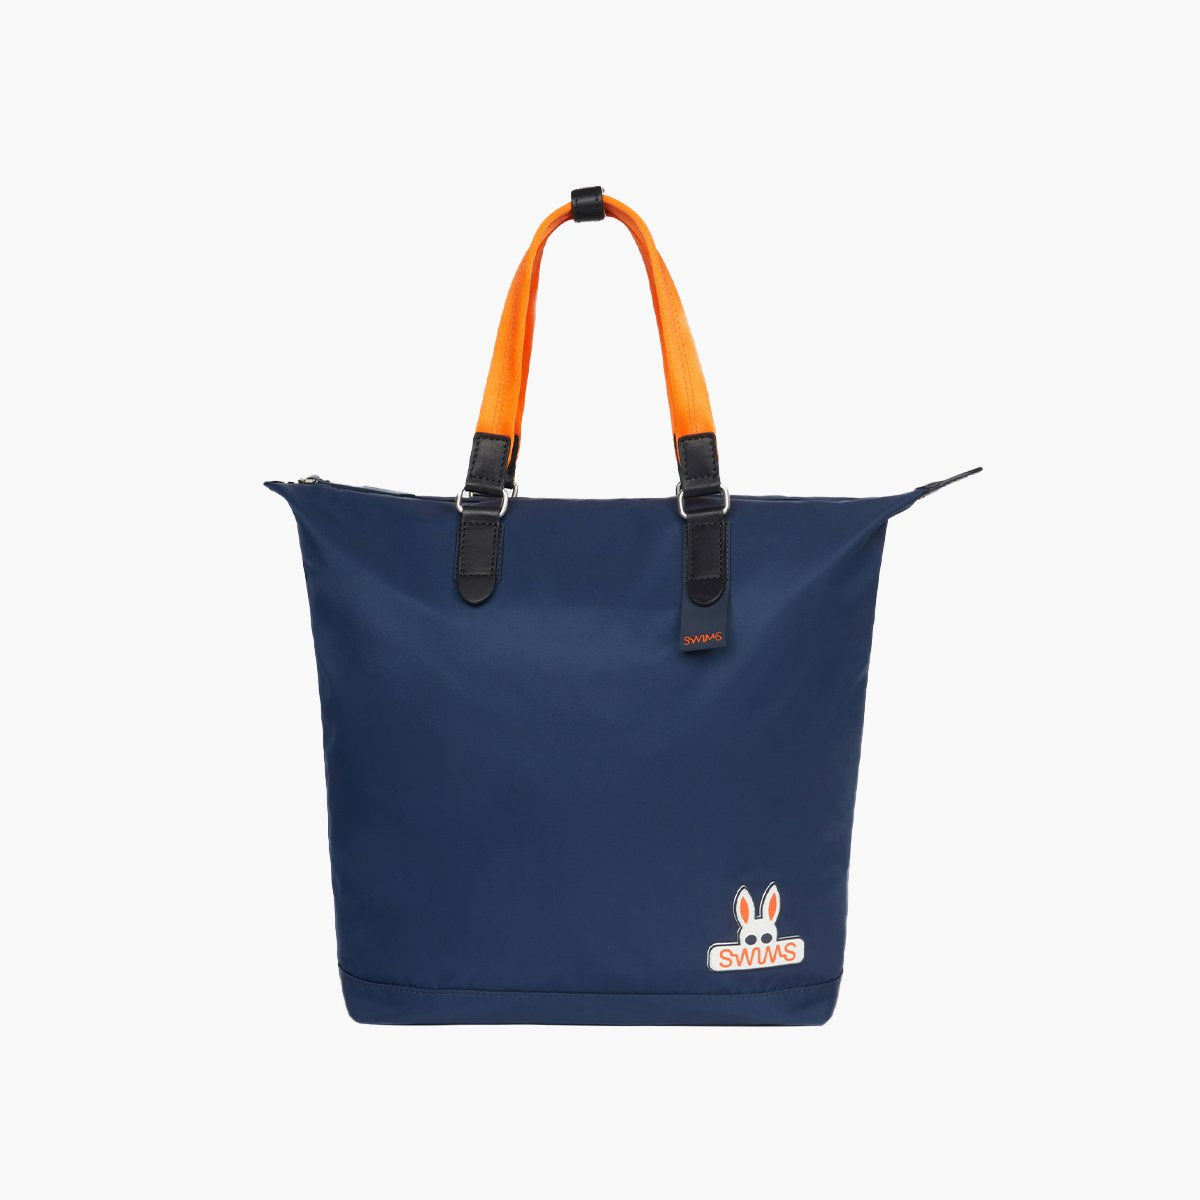 Psycho Bunny x SWIMS Tote - background::white,variant::navy